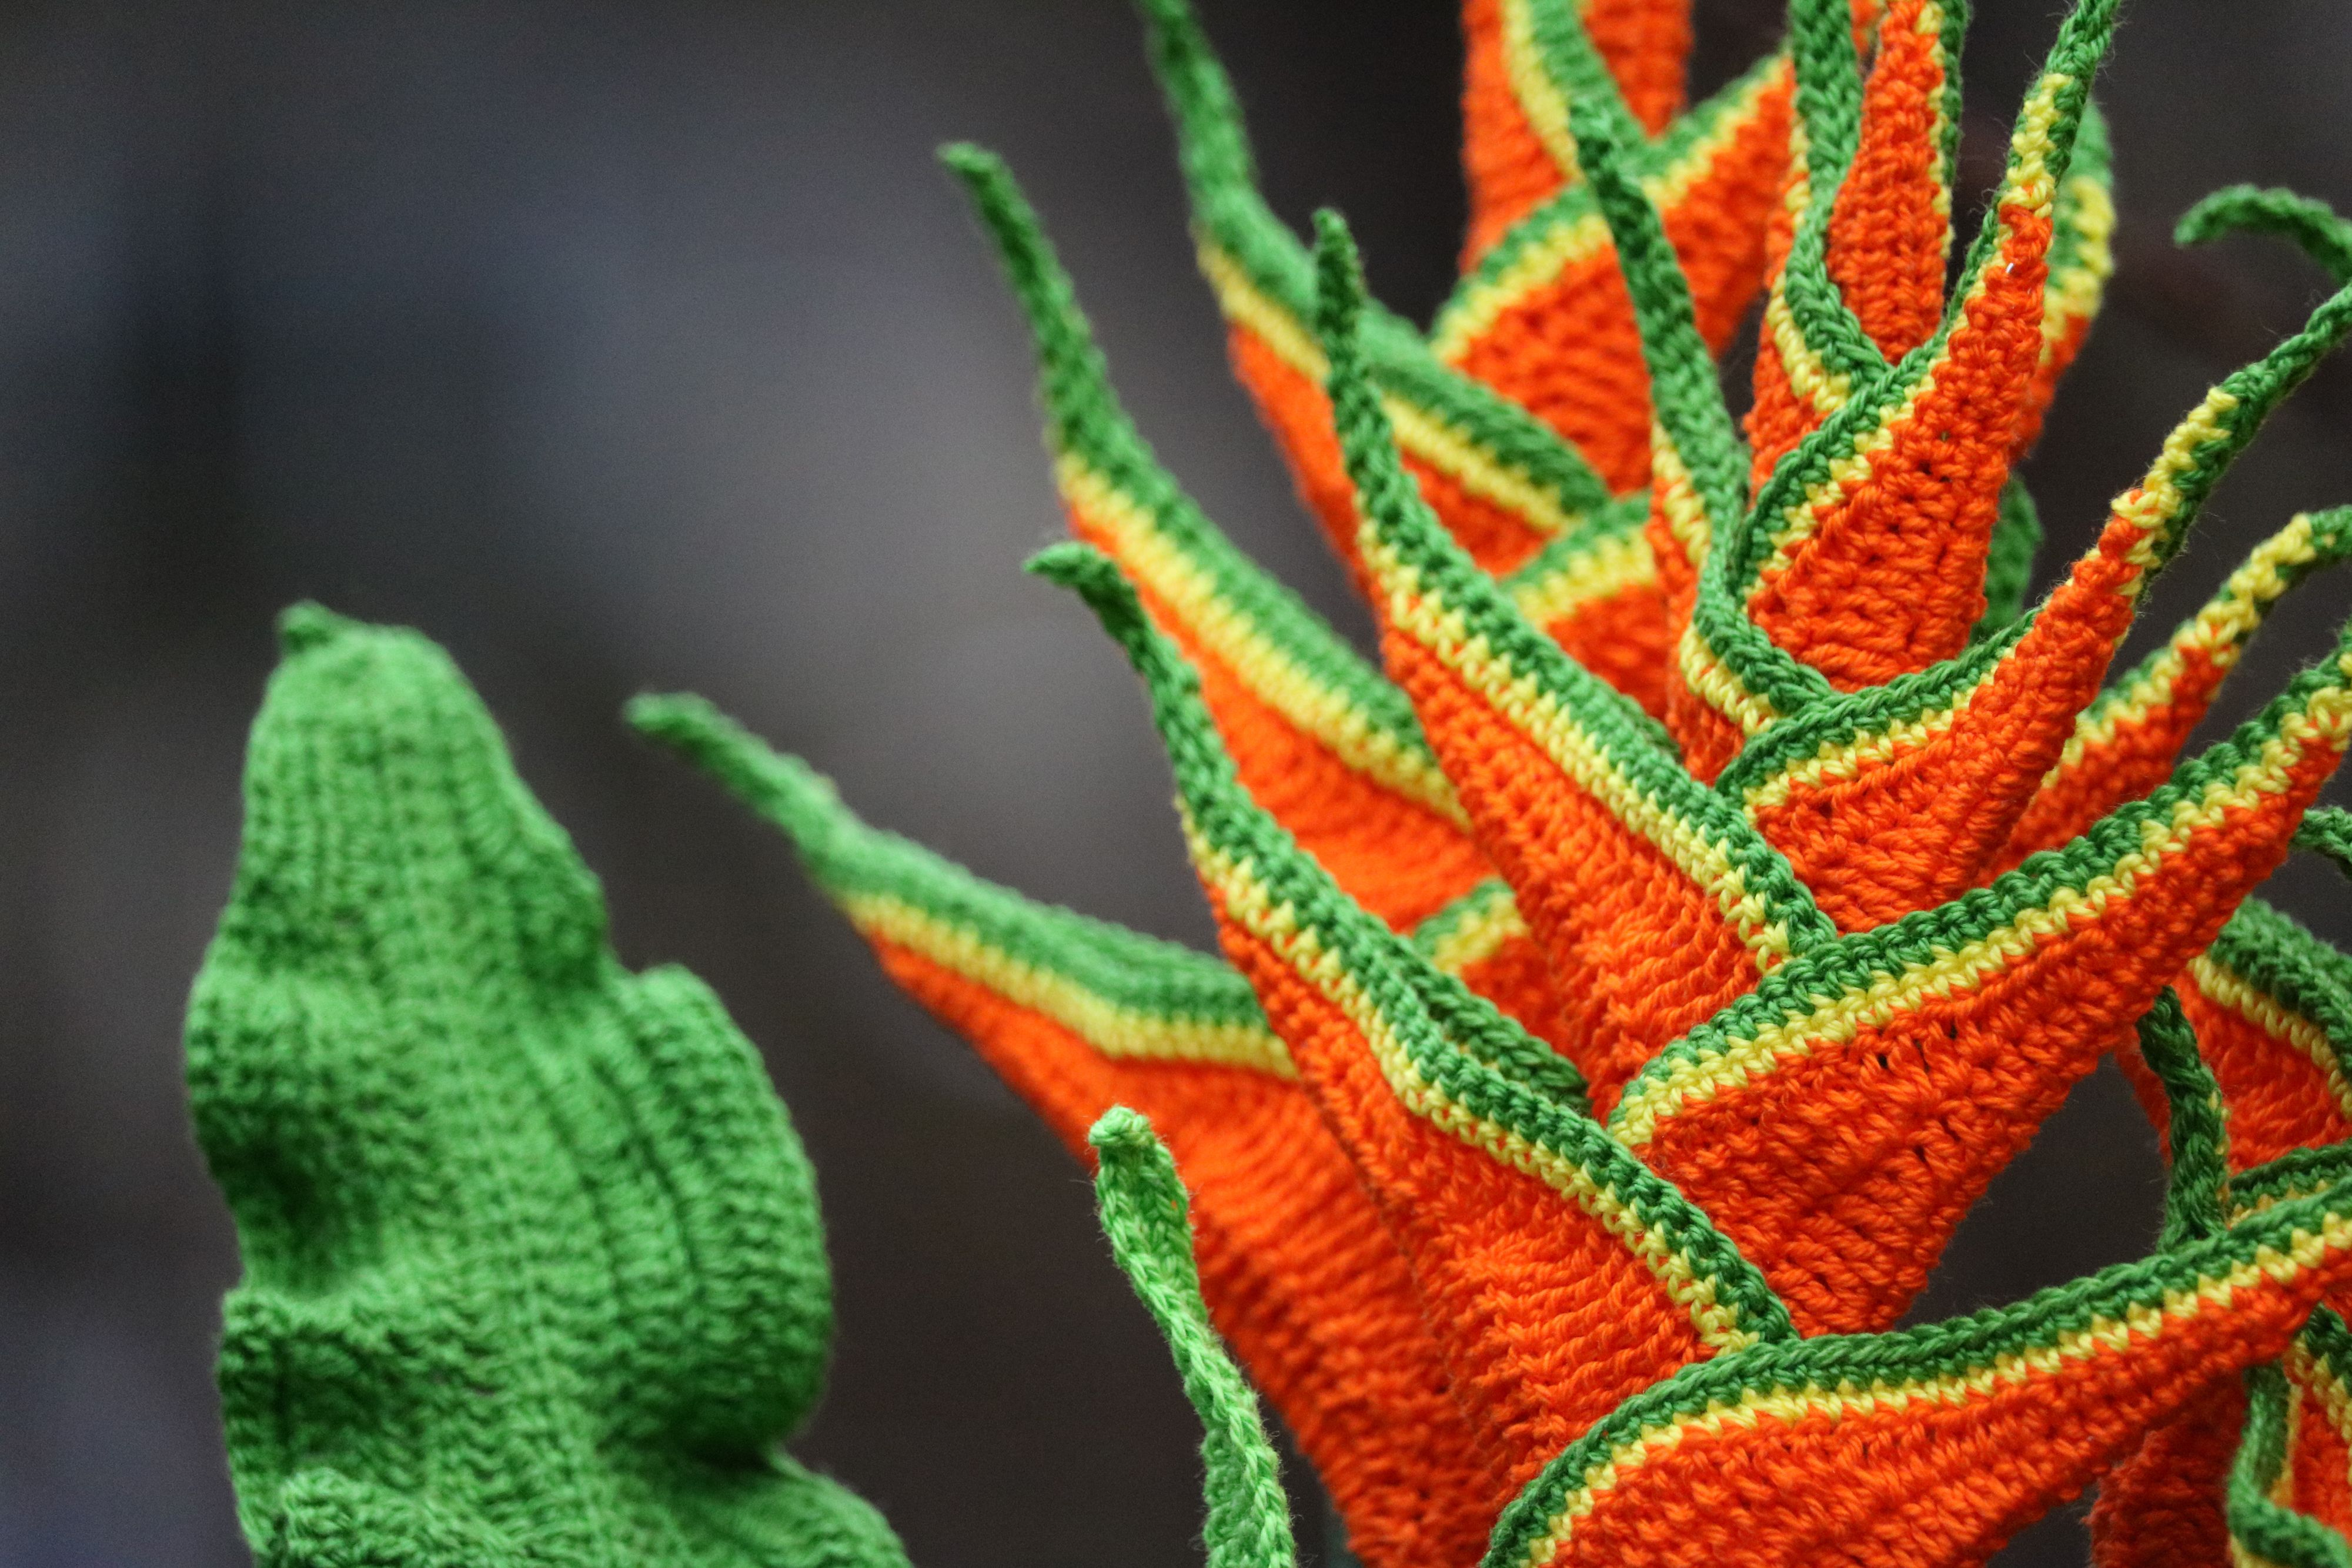 Crochet the tropic and capture their strong contrasting colors.